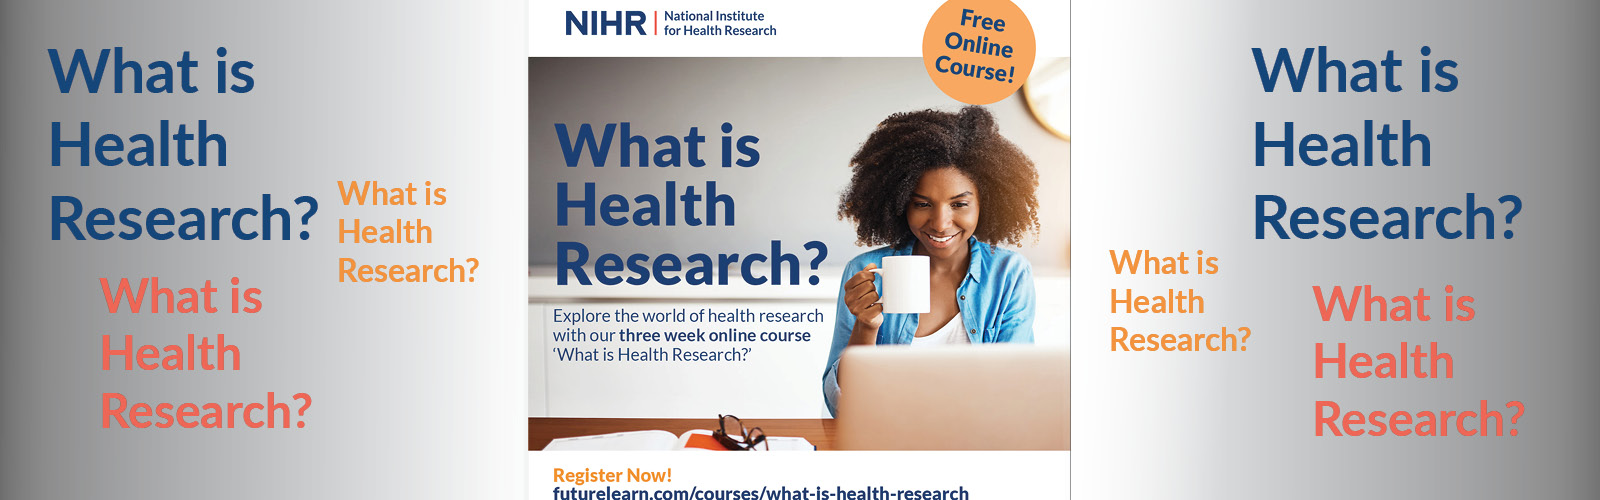 MOOC poster - what is health research?